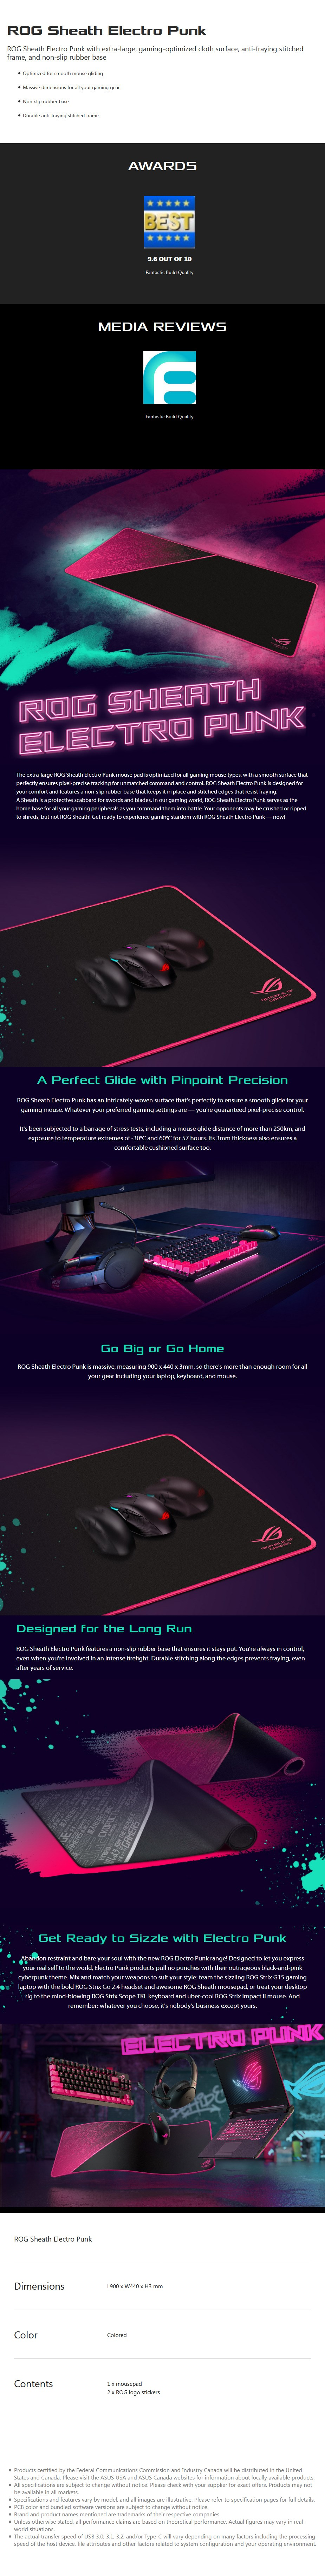 asus-rog-sheath-extended-gaming-mouse-pad-electro-punk-ac41572-4.jpg